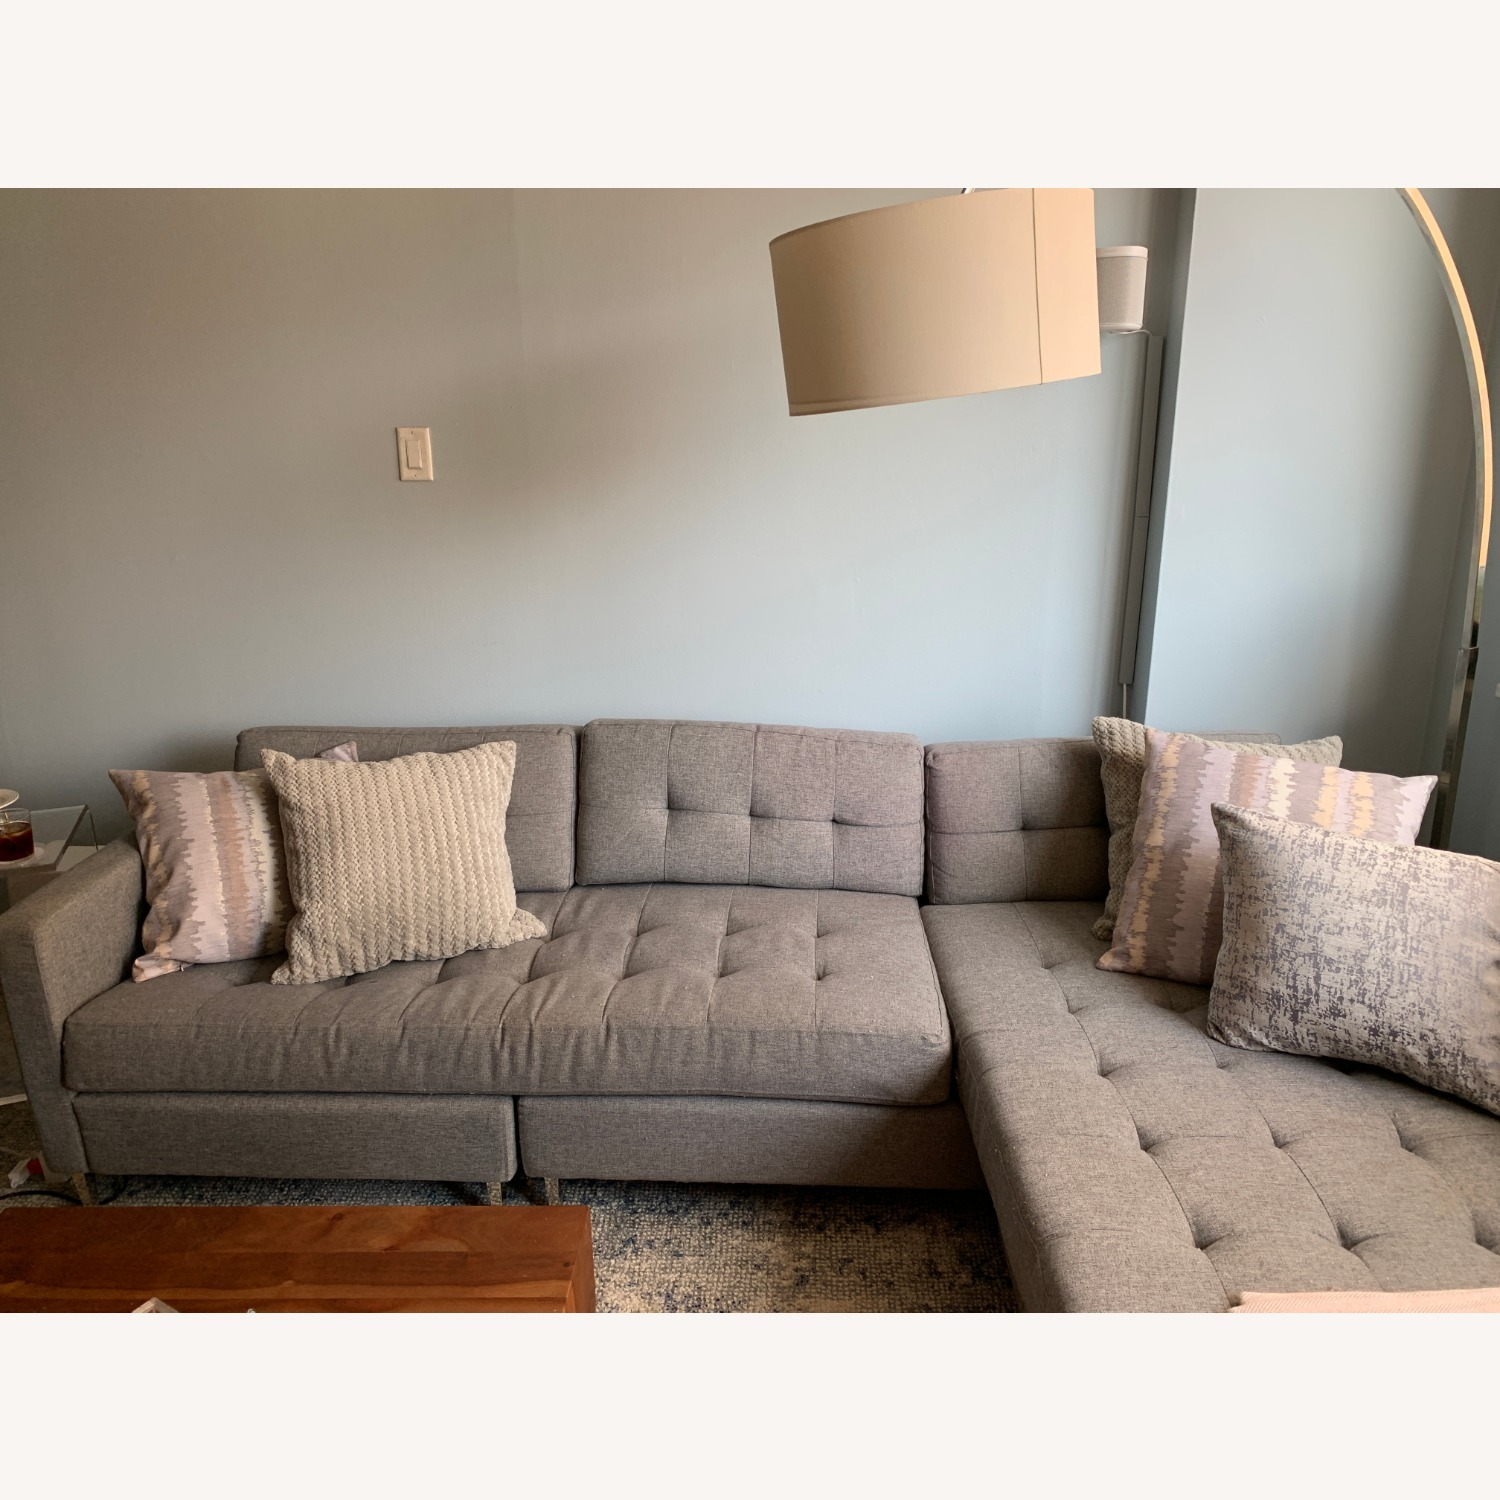 CB2 Tufted Grey Chaise Lounge Sofa - image-1